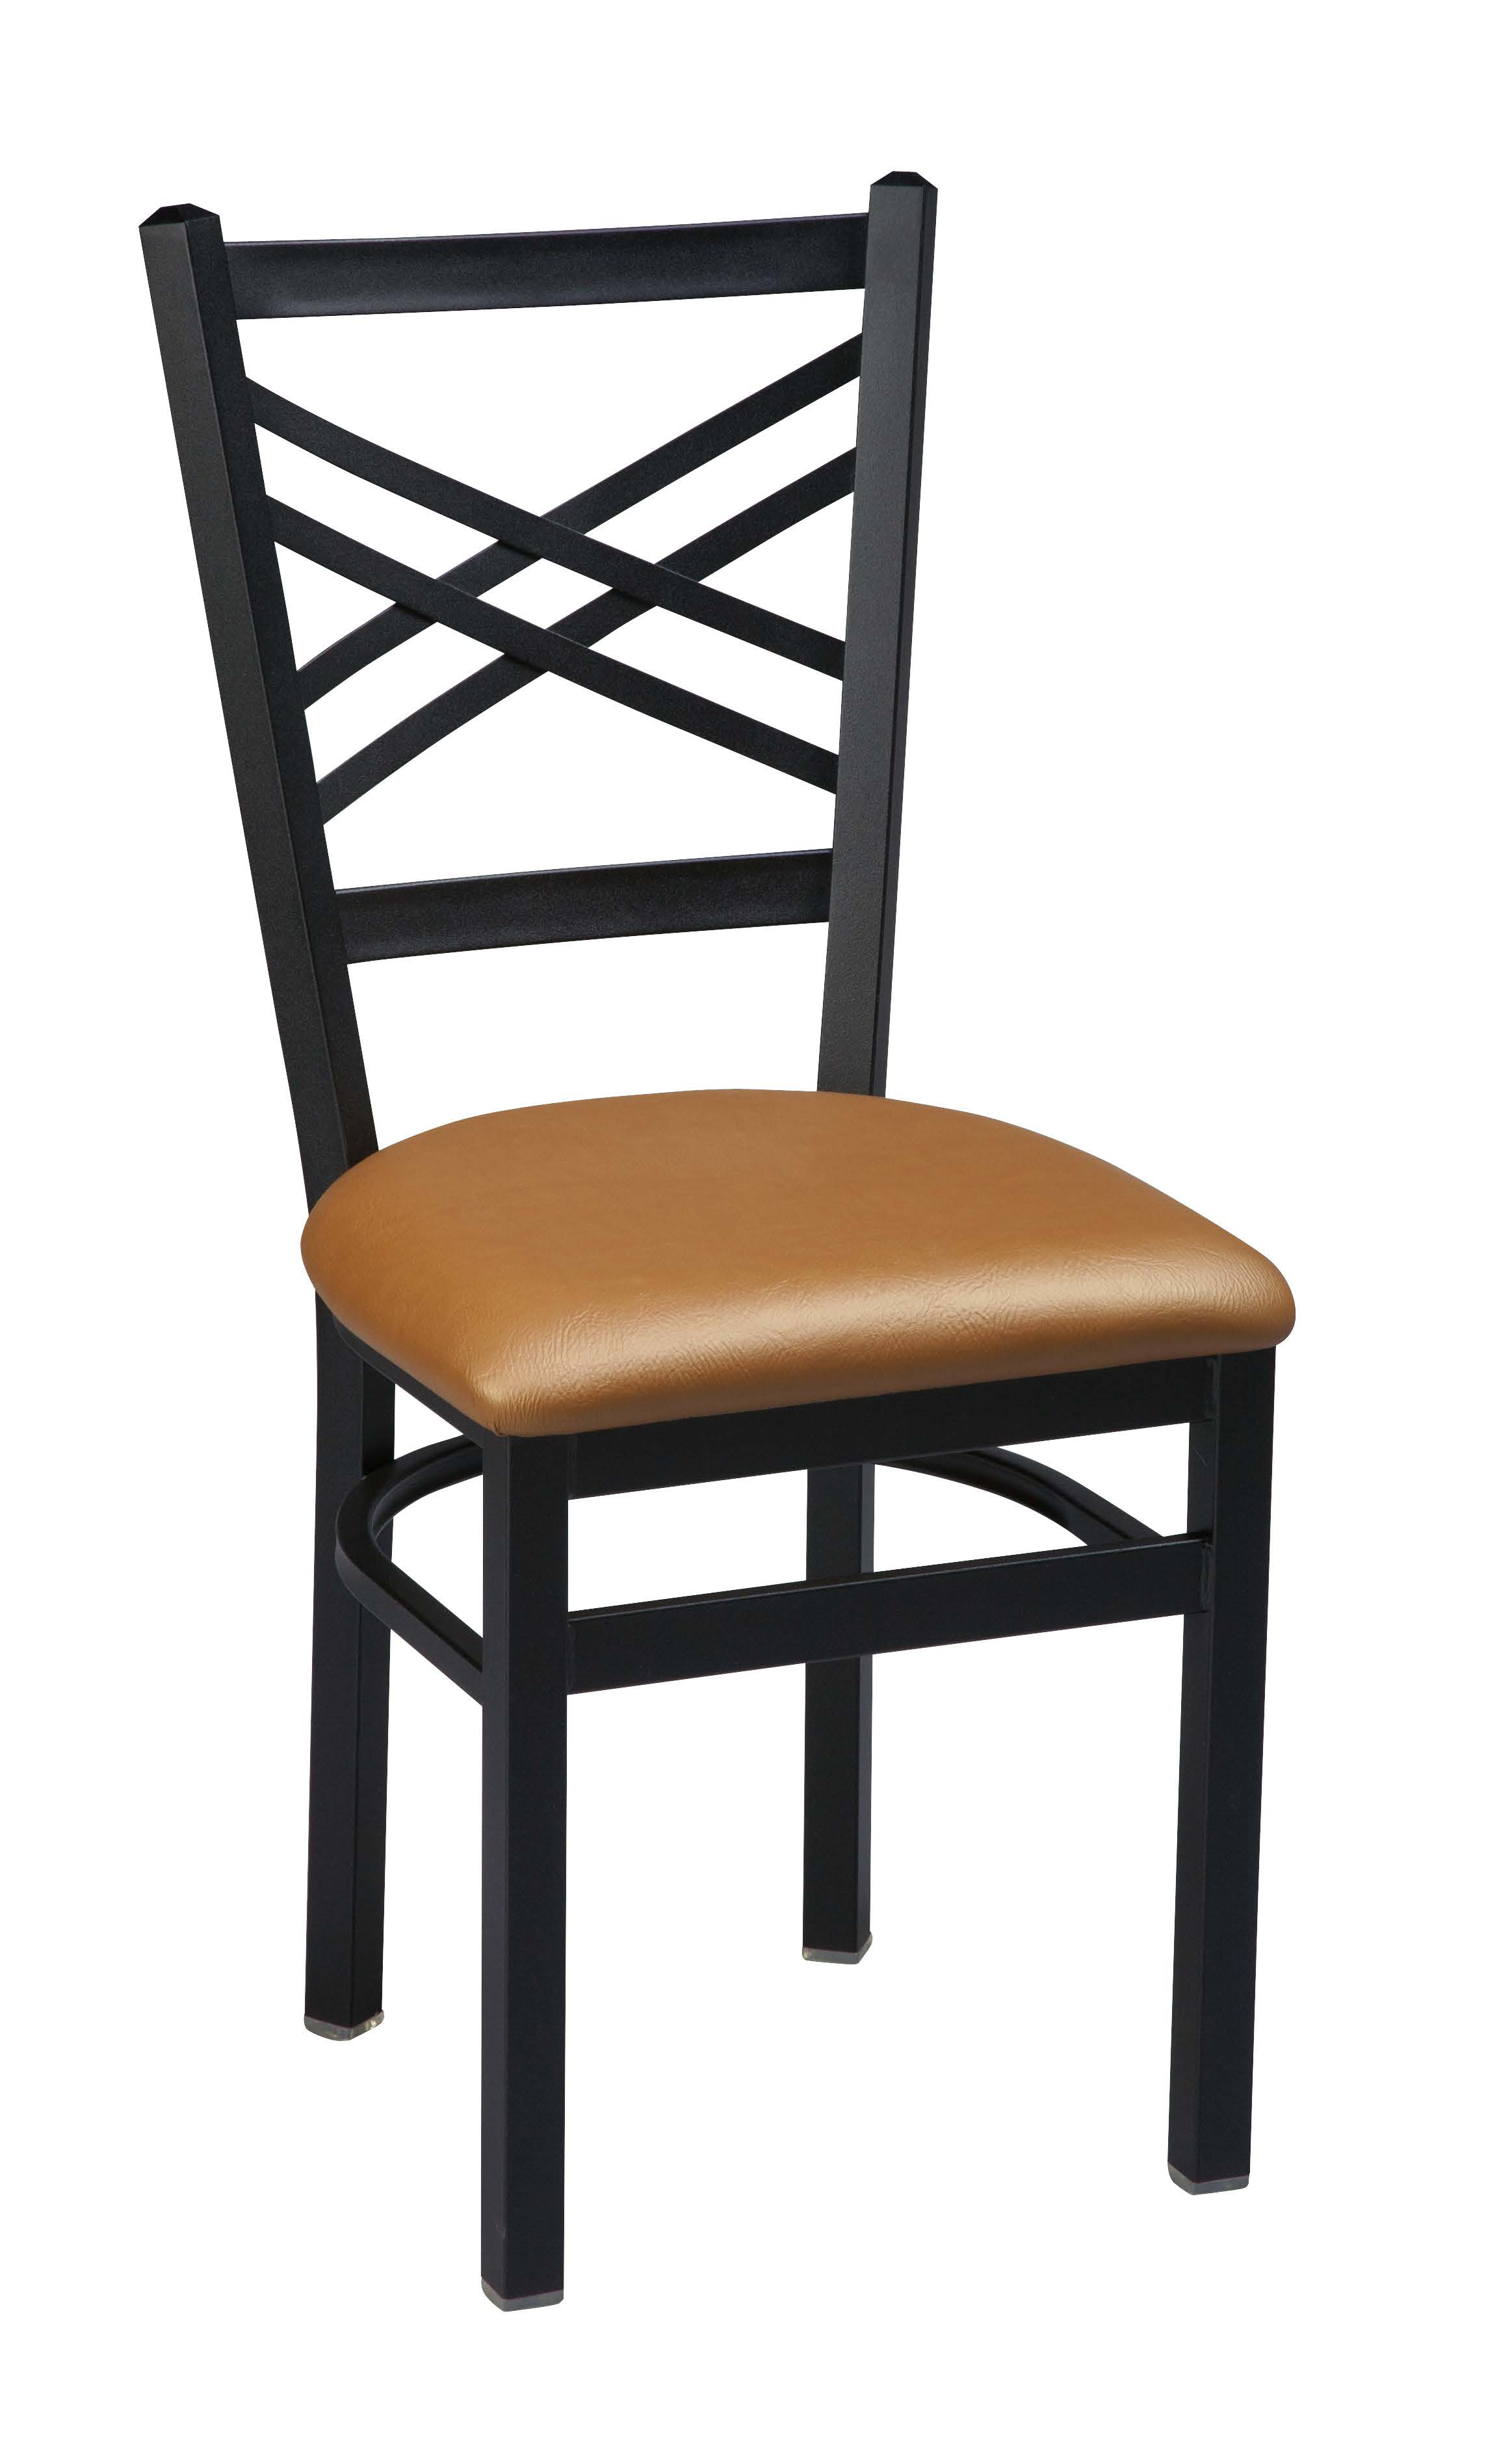 swivel chair regal industrial kitchen chairs 515tb tall back steel frame by braniff barstools